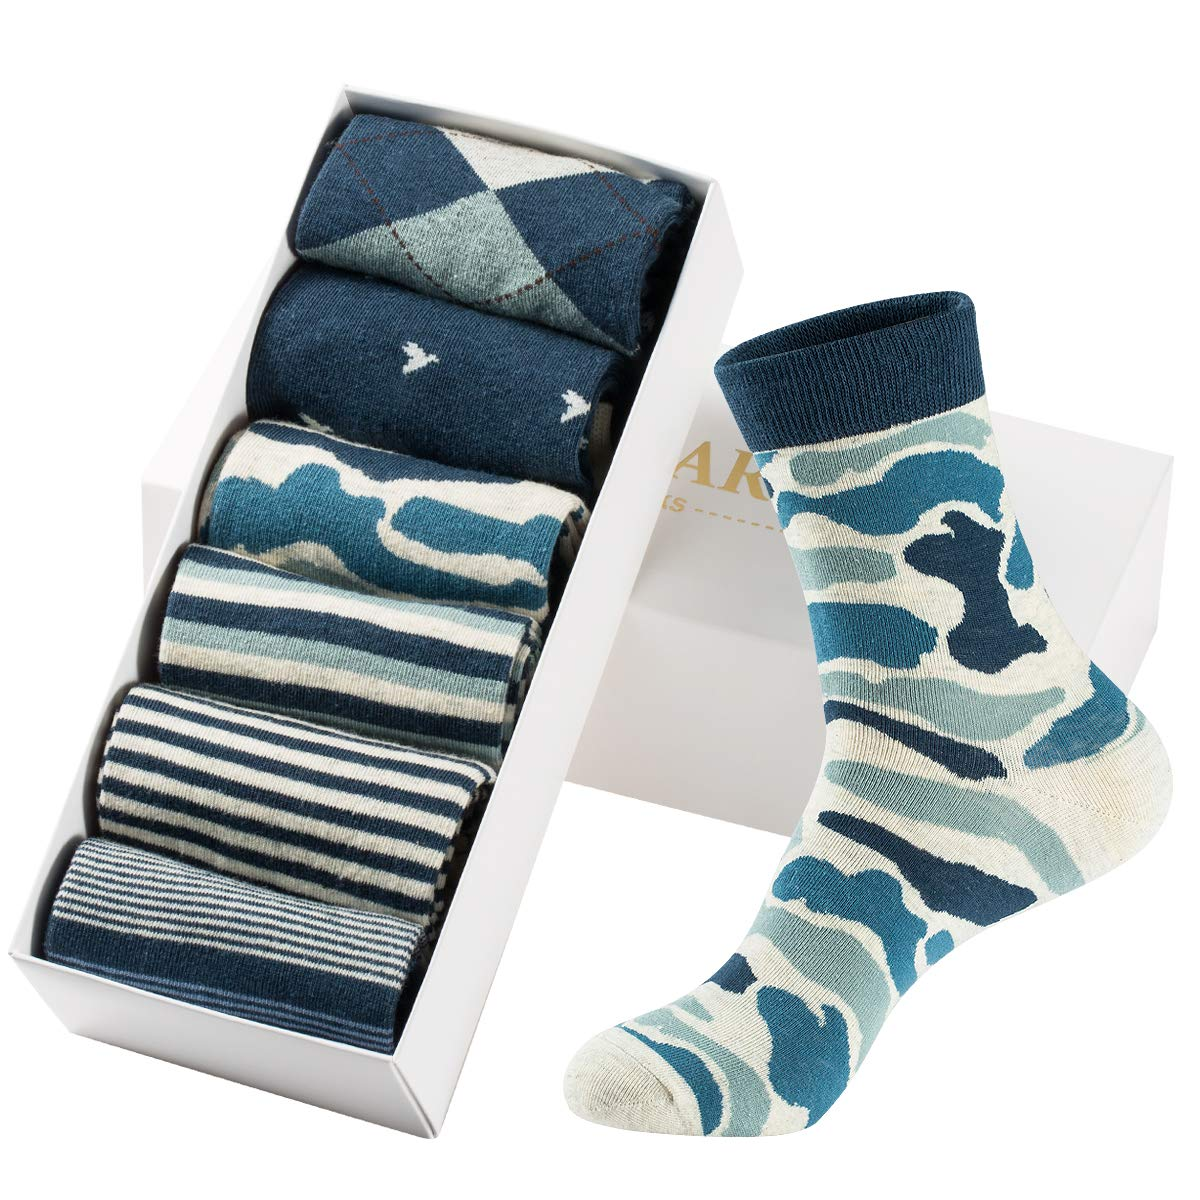 Mens Dress Socks High Ankle Cotton Casual Patterned Socks 6 Pairs